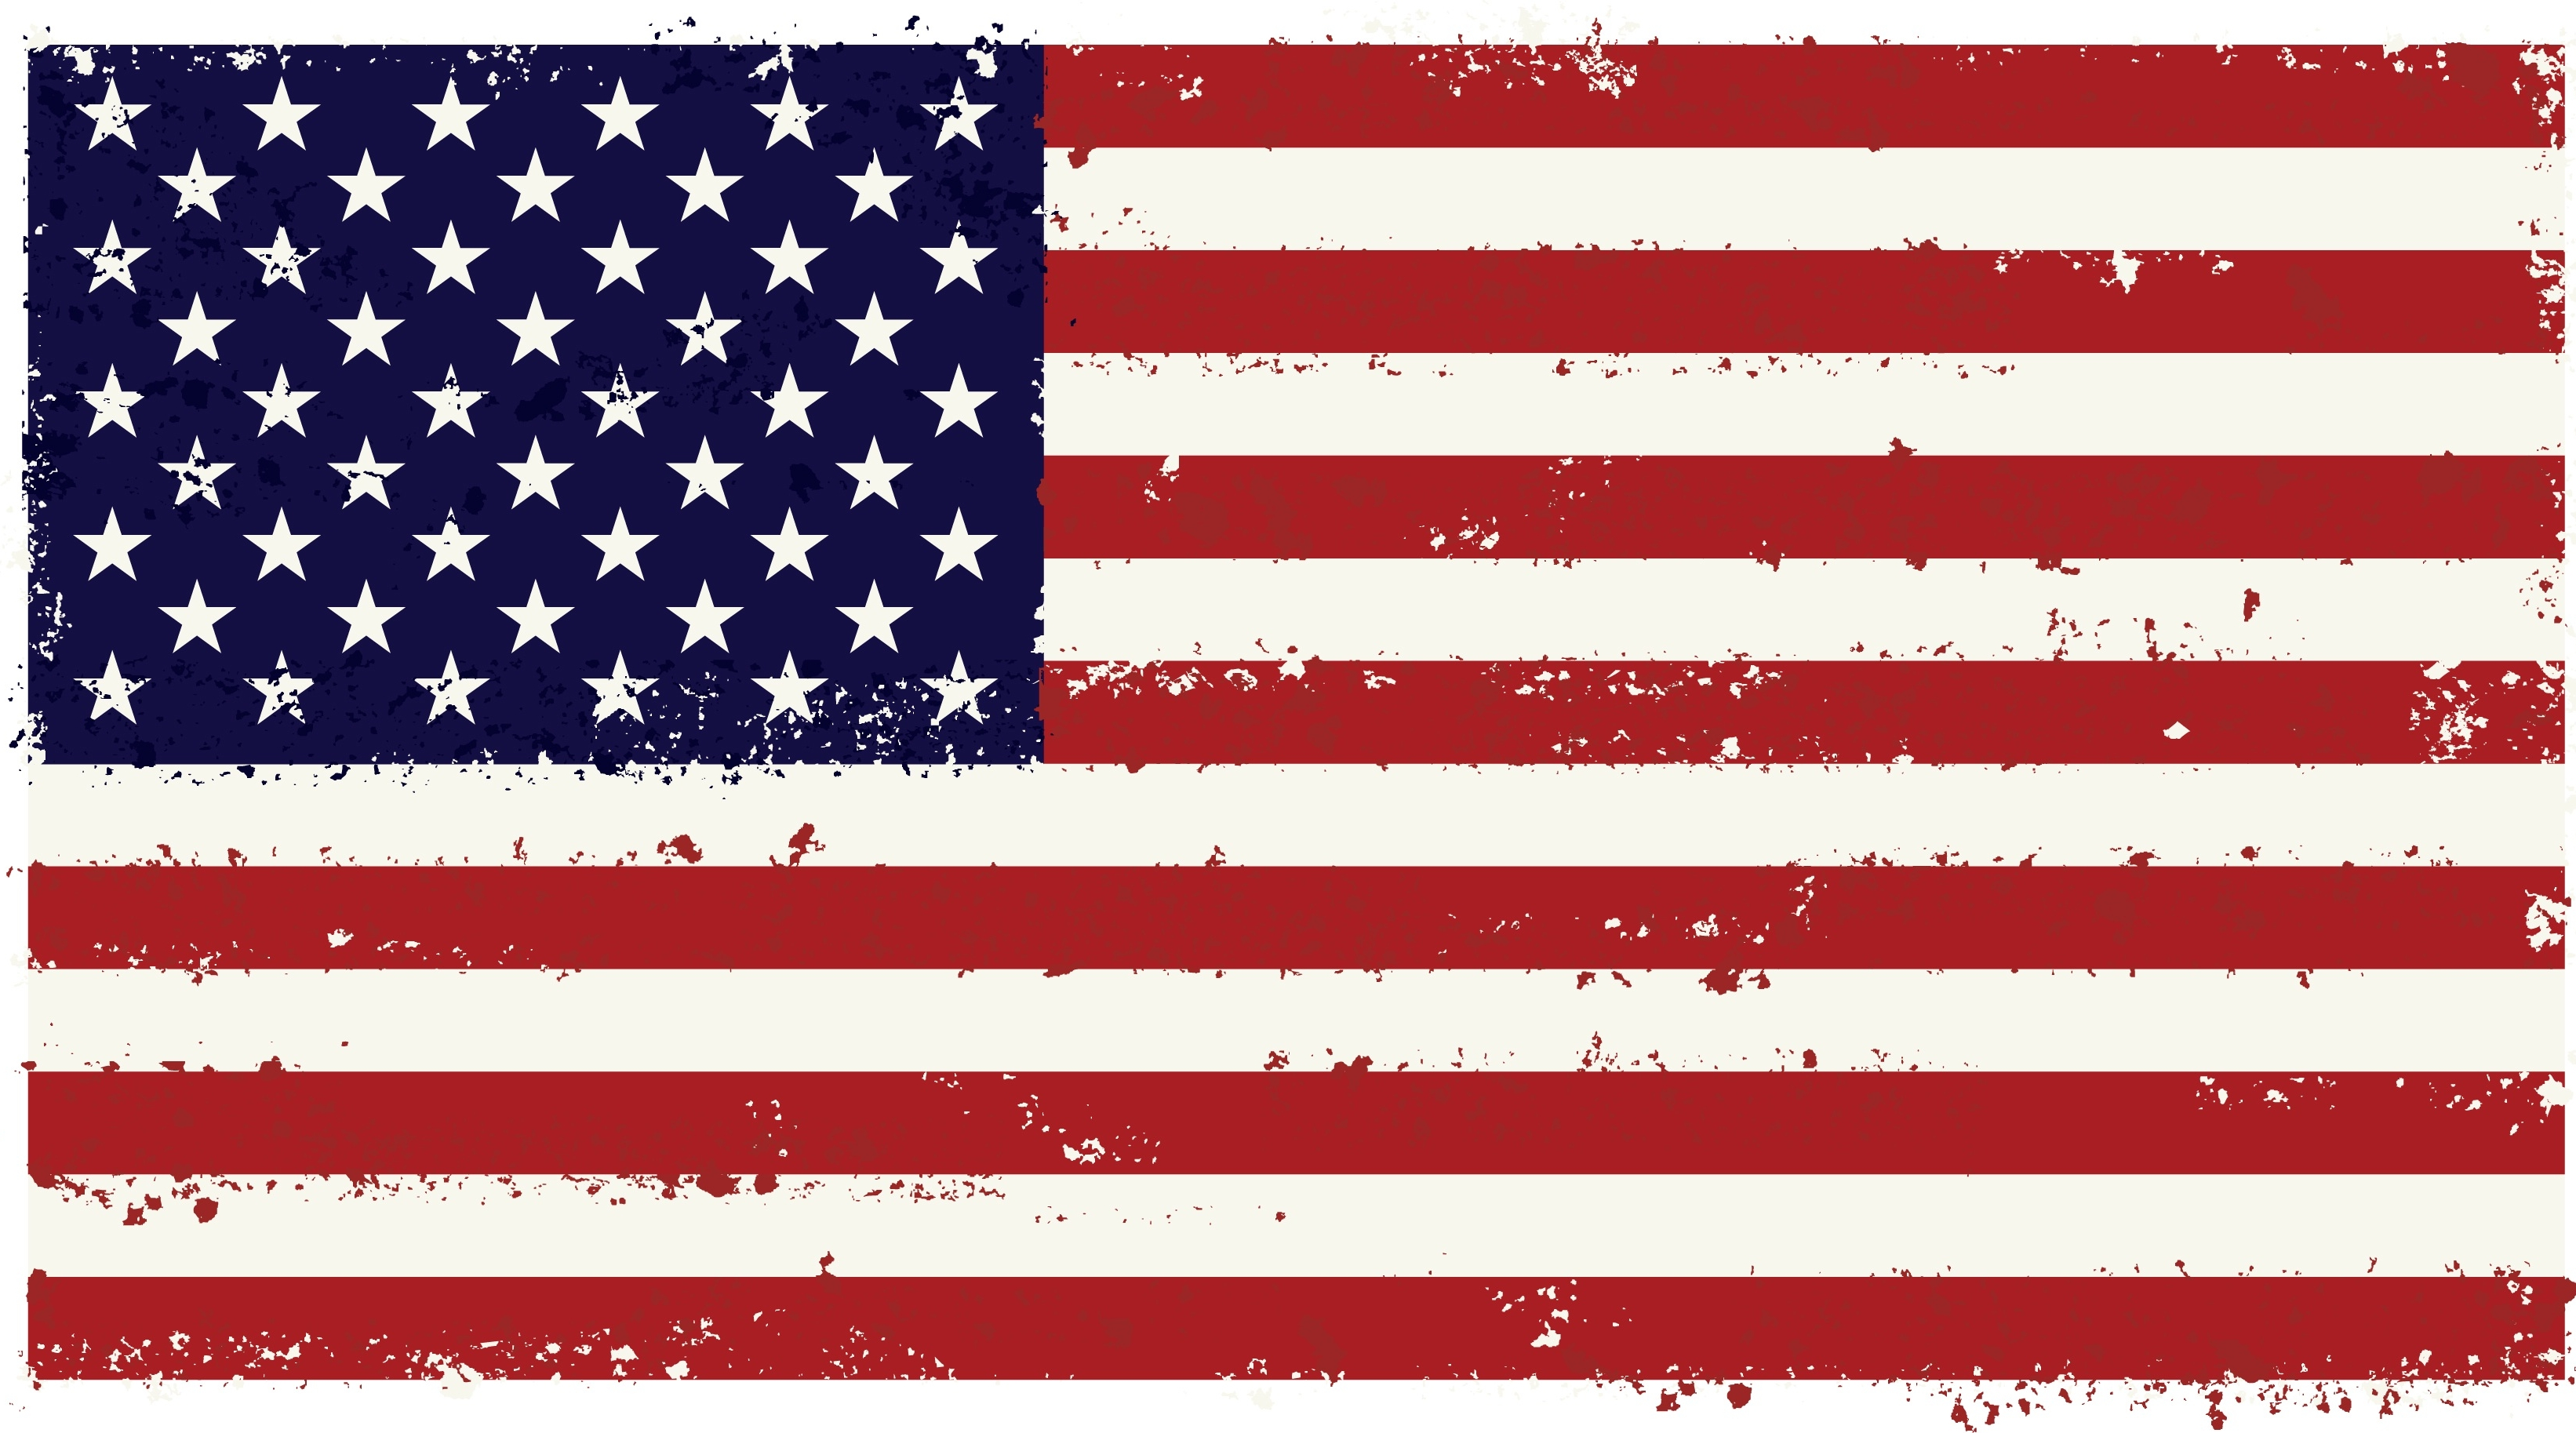 American flag textured clipart